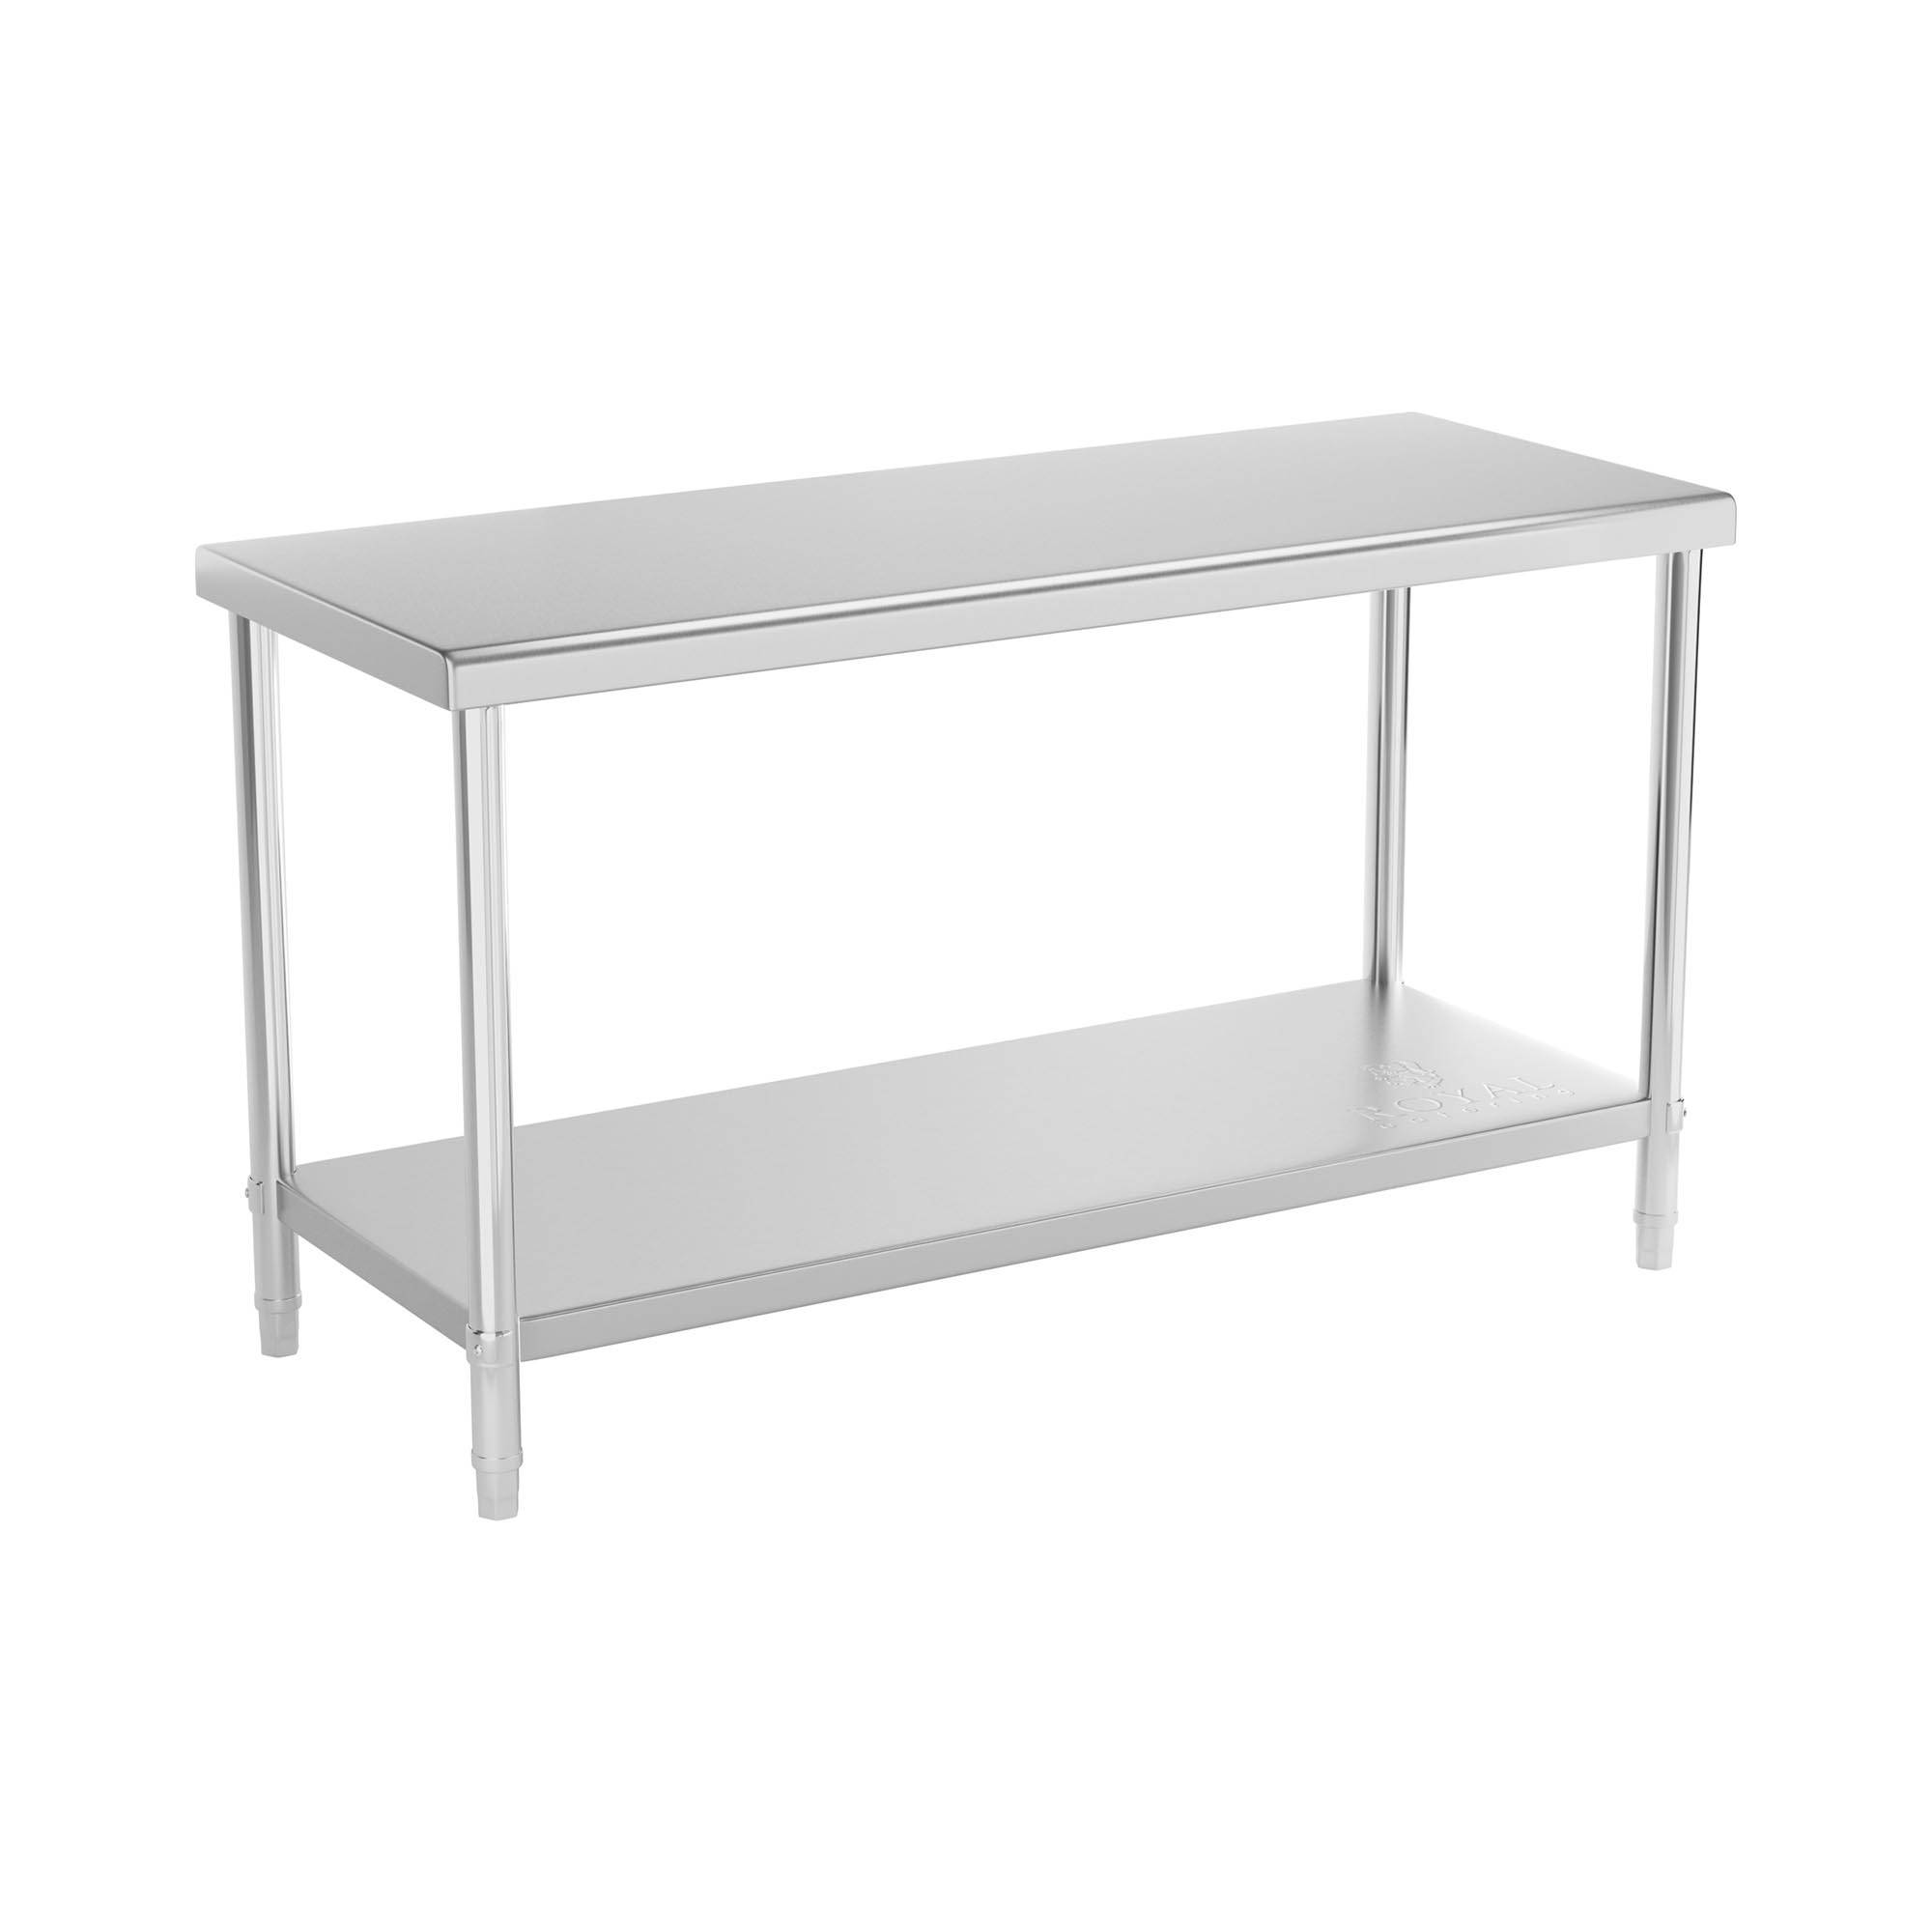 Royal Catering Table de travail en inox - 150 x 60 cm - Capacité de charge de 230 kg RCAT-150/60-NW